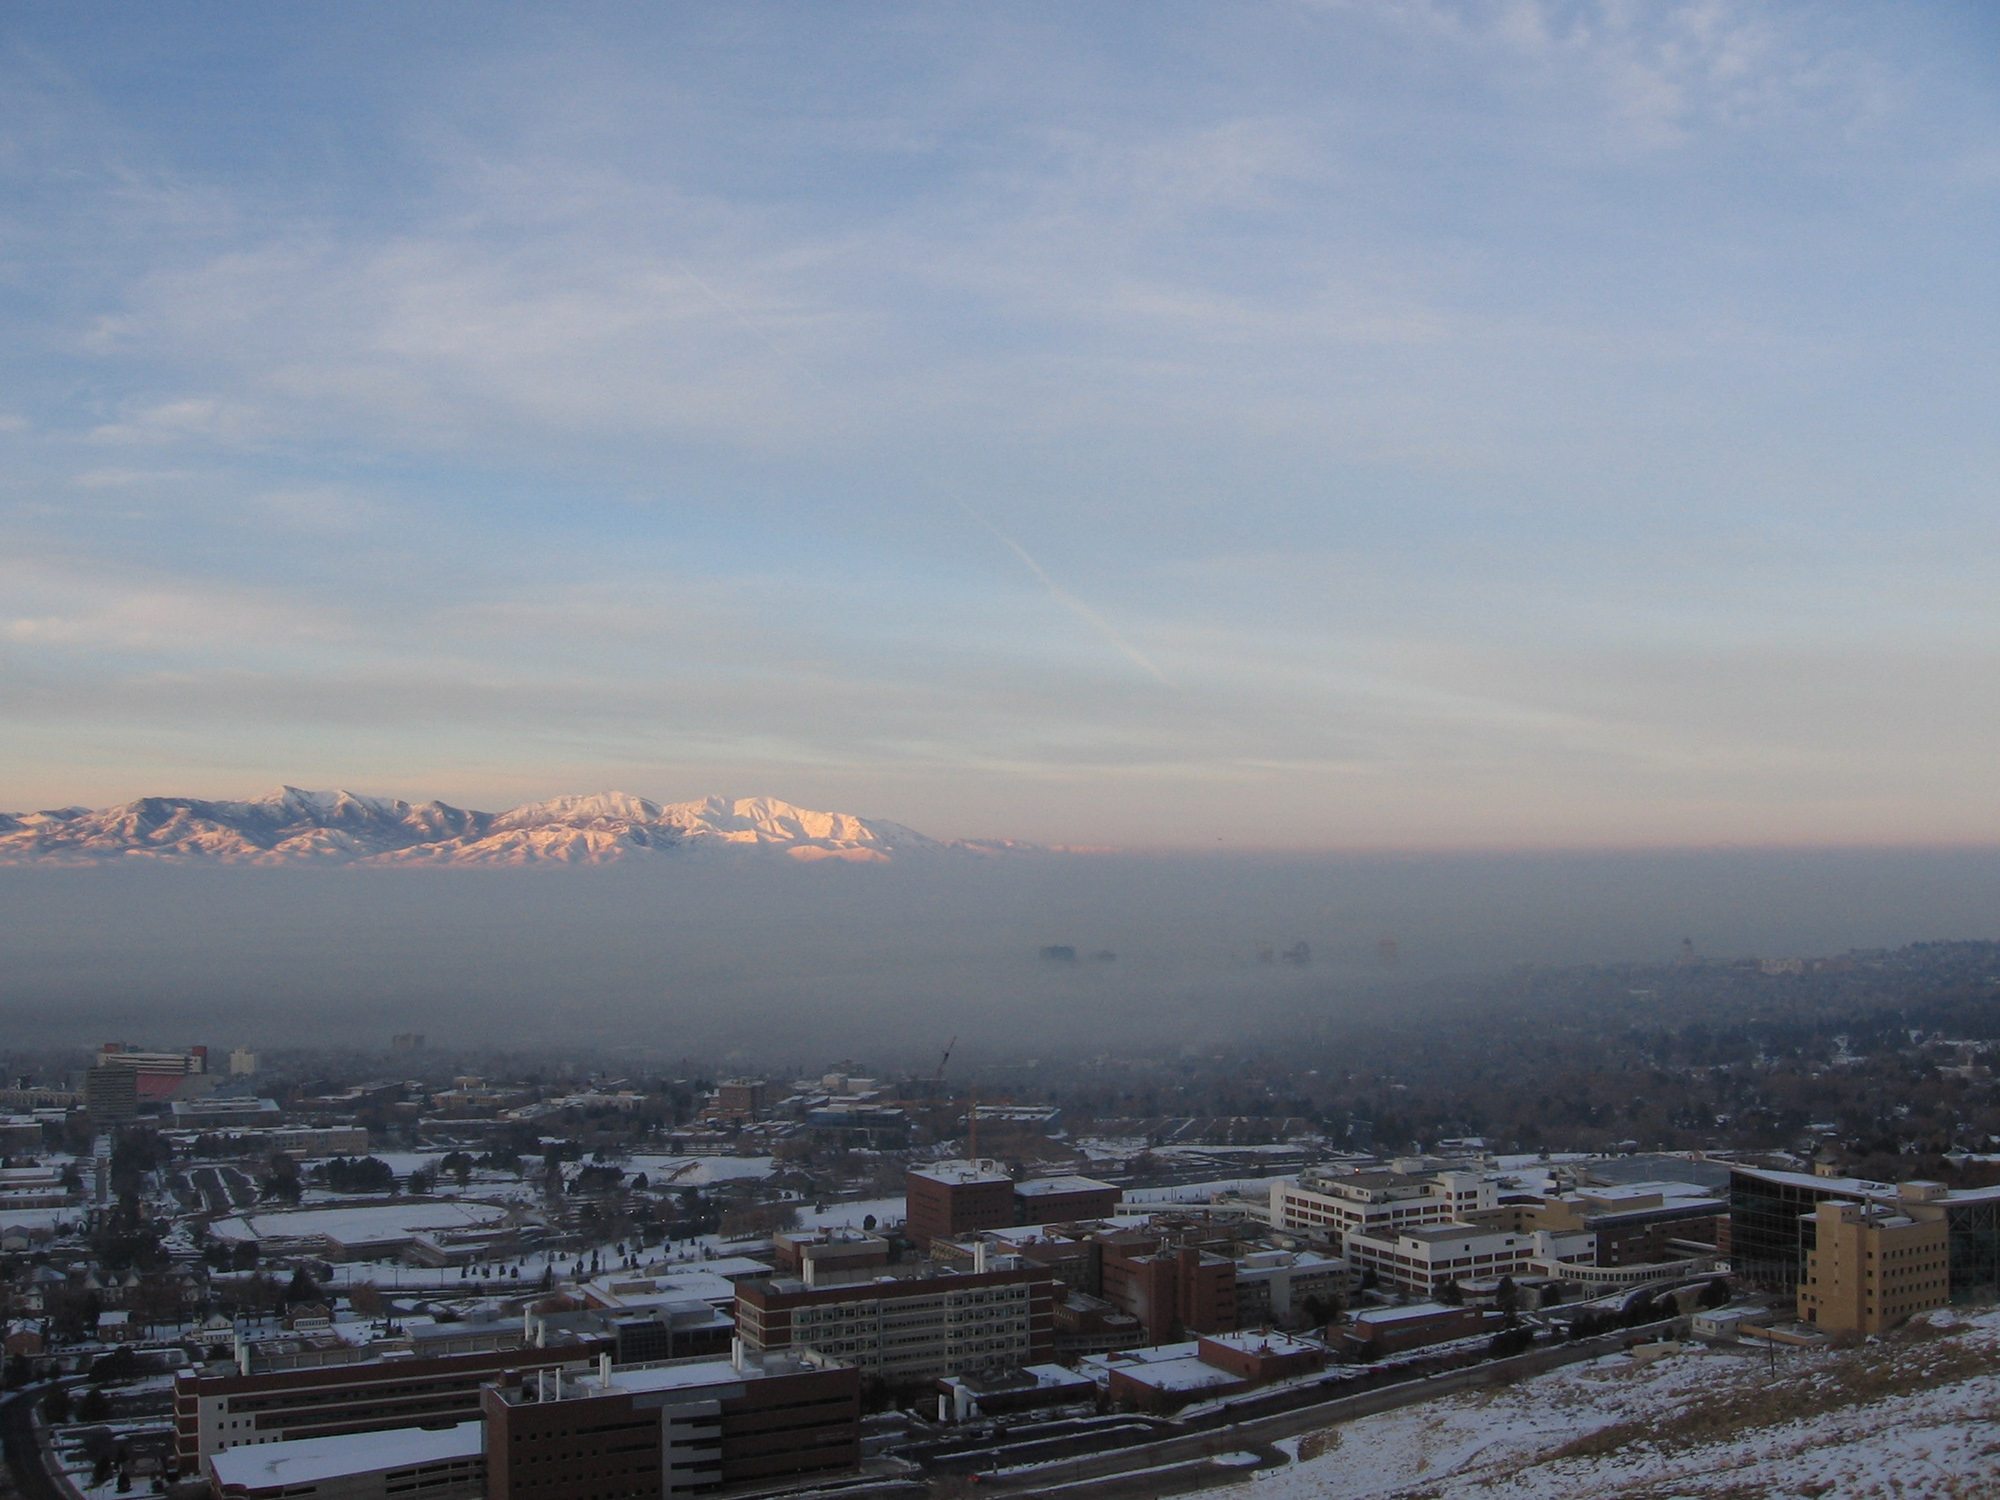 A wintertime inversion or cold-air pool traps air pollution over the Salt Lake Valley, almost completely obscuring downtown Salt Lake City in the center of the photo. The University of Utah campus sprawls in the foreground, on the city's east bench and mostly above the inversion. The University of Utah will lead a $1.3 million study aimed at better understanding conditions that lead to the formation, maintenance and breakup of the polluted inversions.